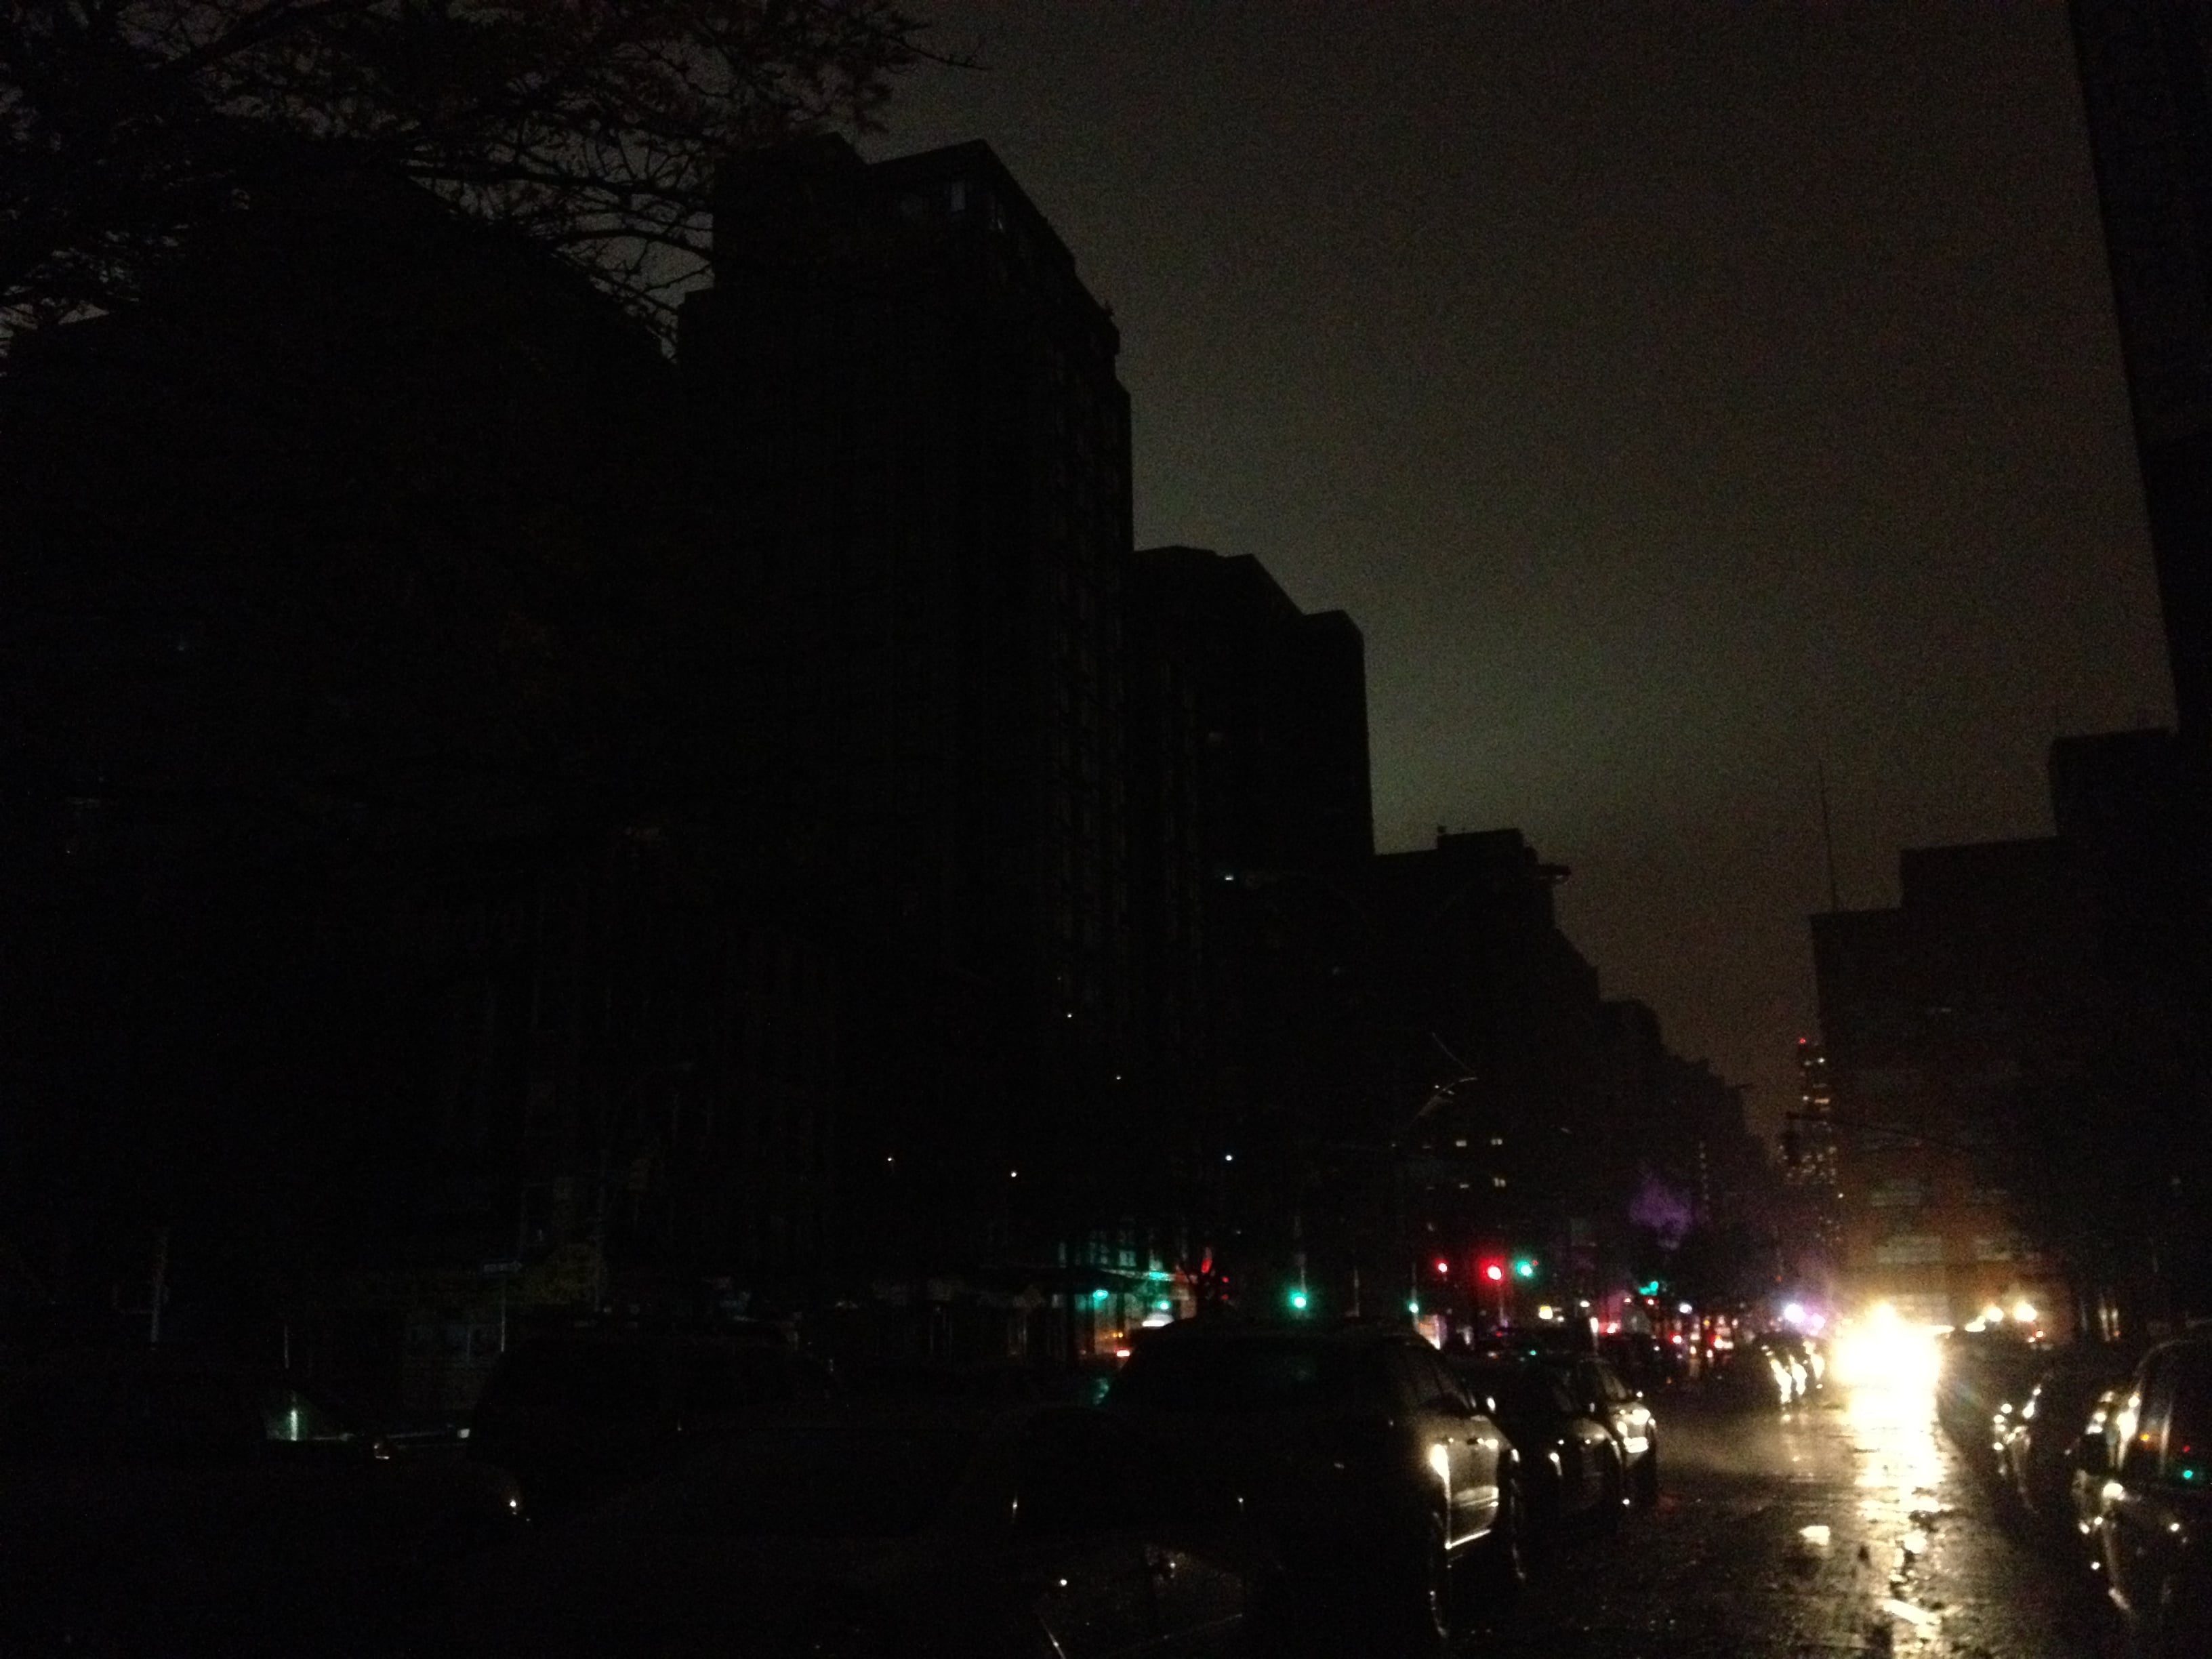 This is what it looks like down here in the dark. Photo via Christopher London of manhattansociety.com